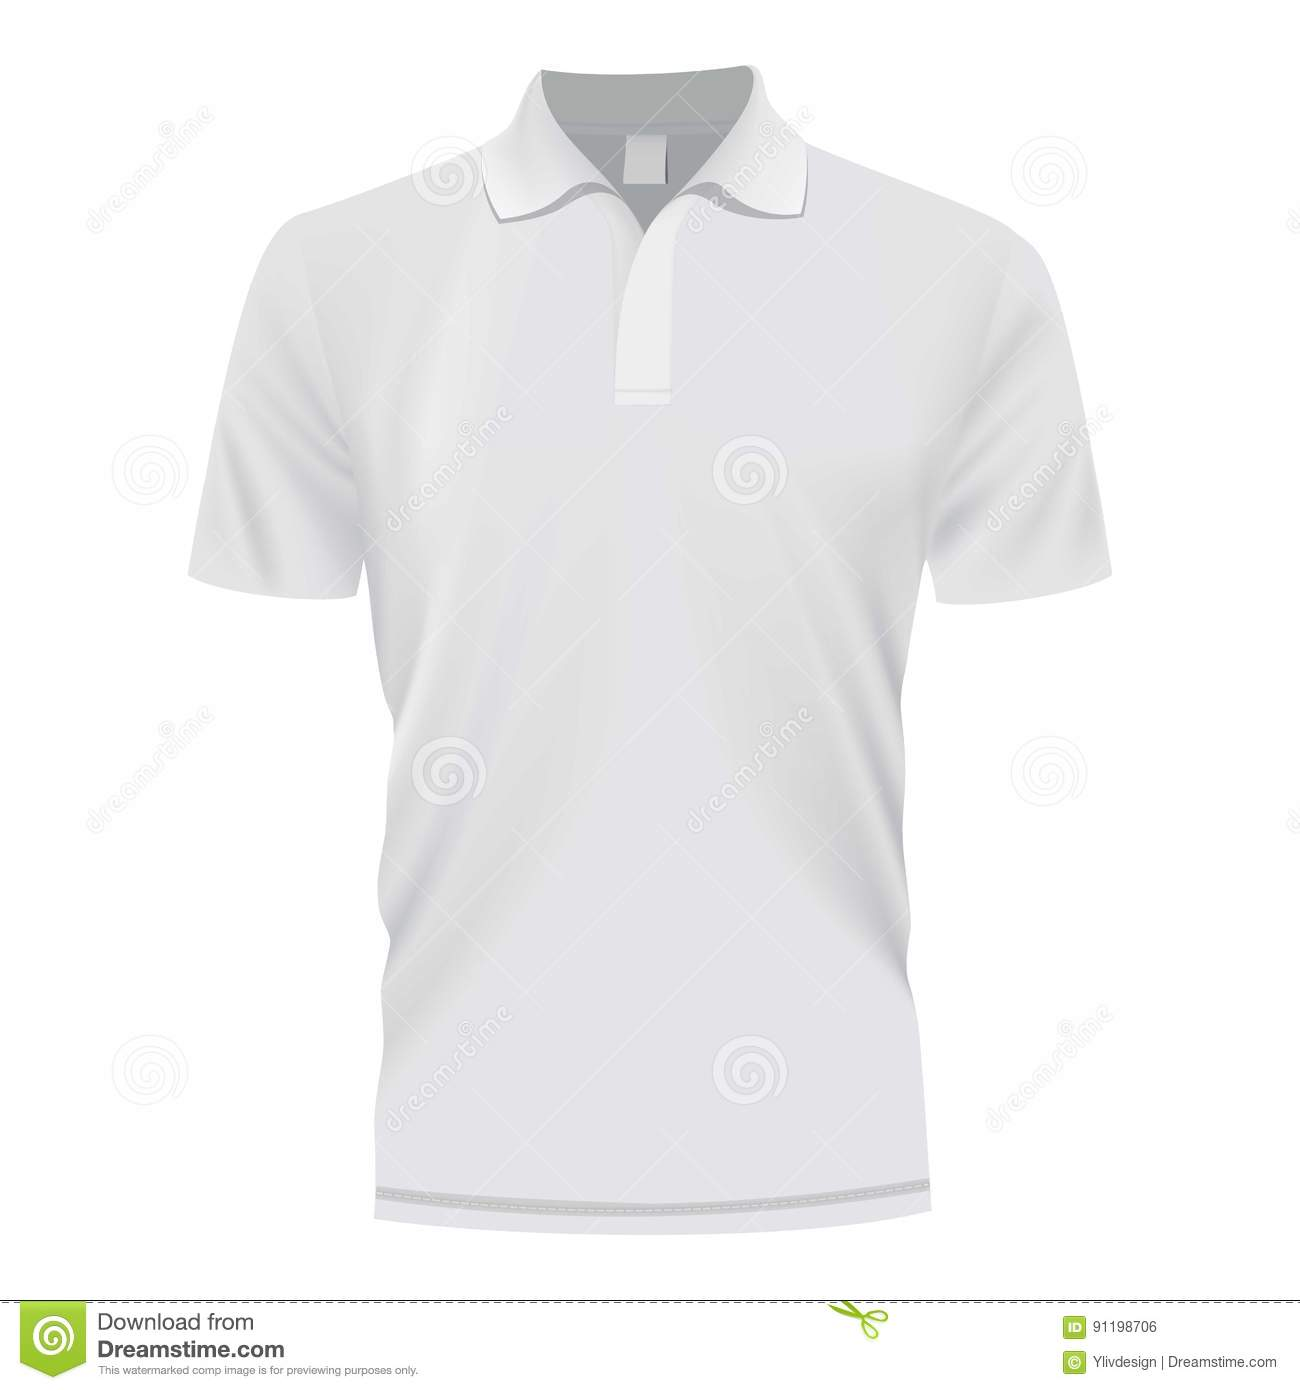 White polo shirt mockup realistic style stock vector for Free polo shirt mockup